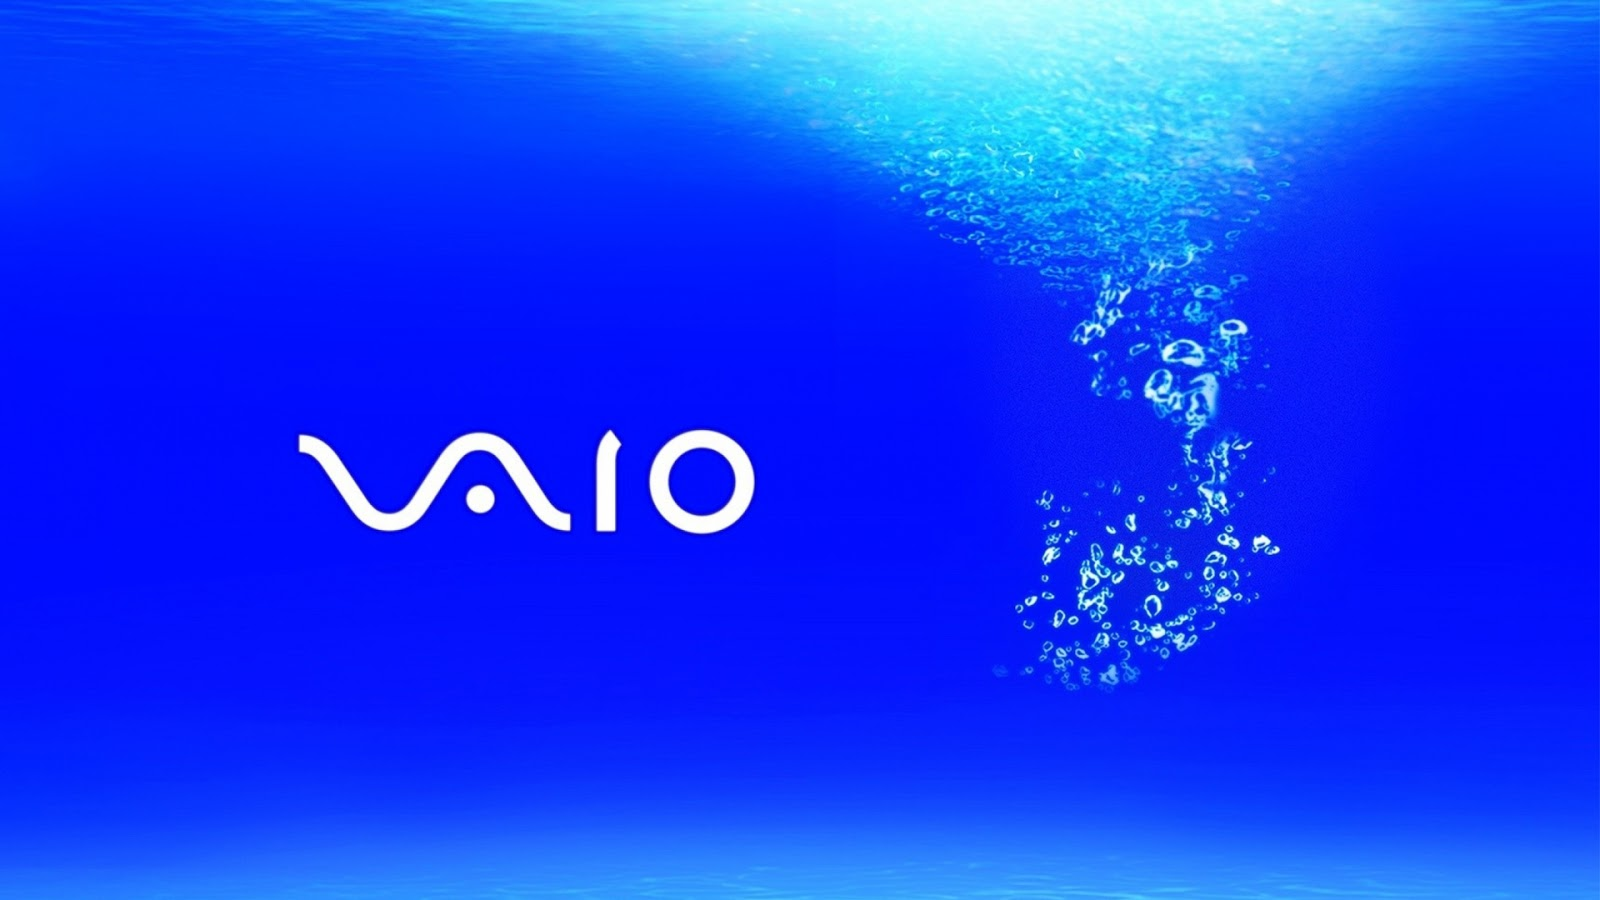 Sony Vaio HD Wallpapers